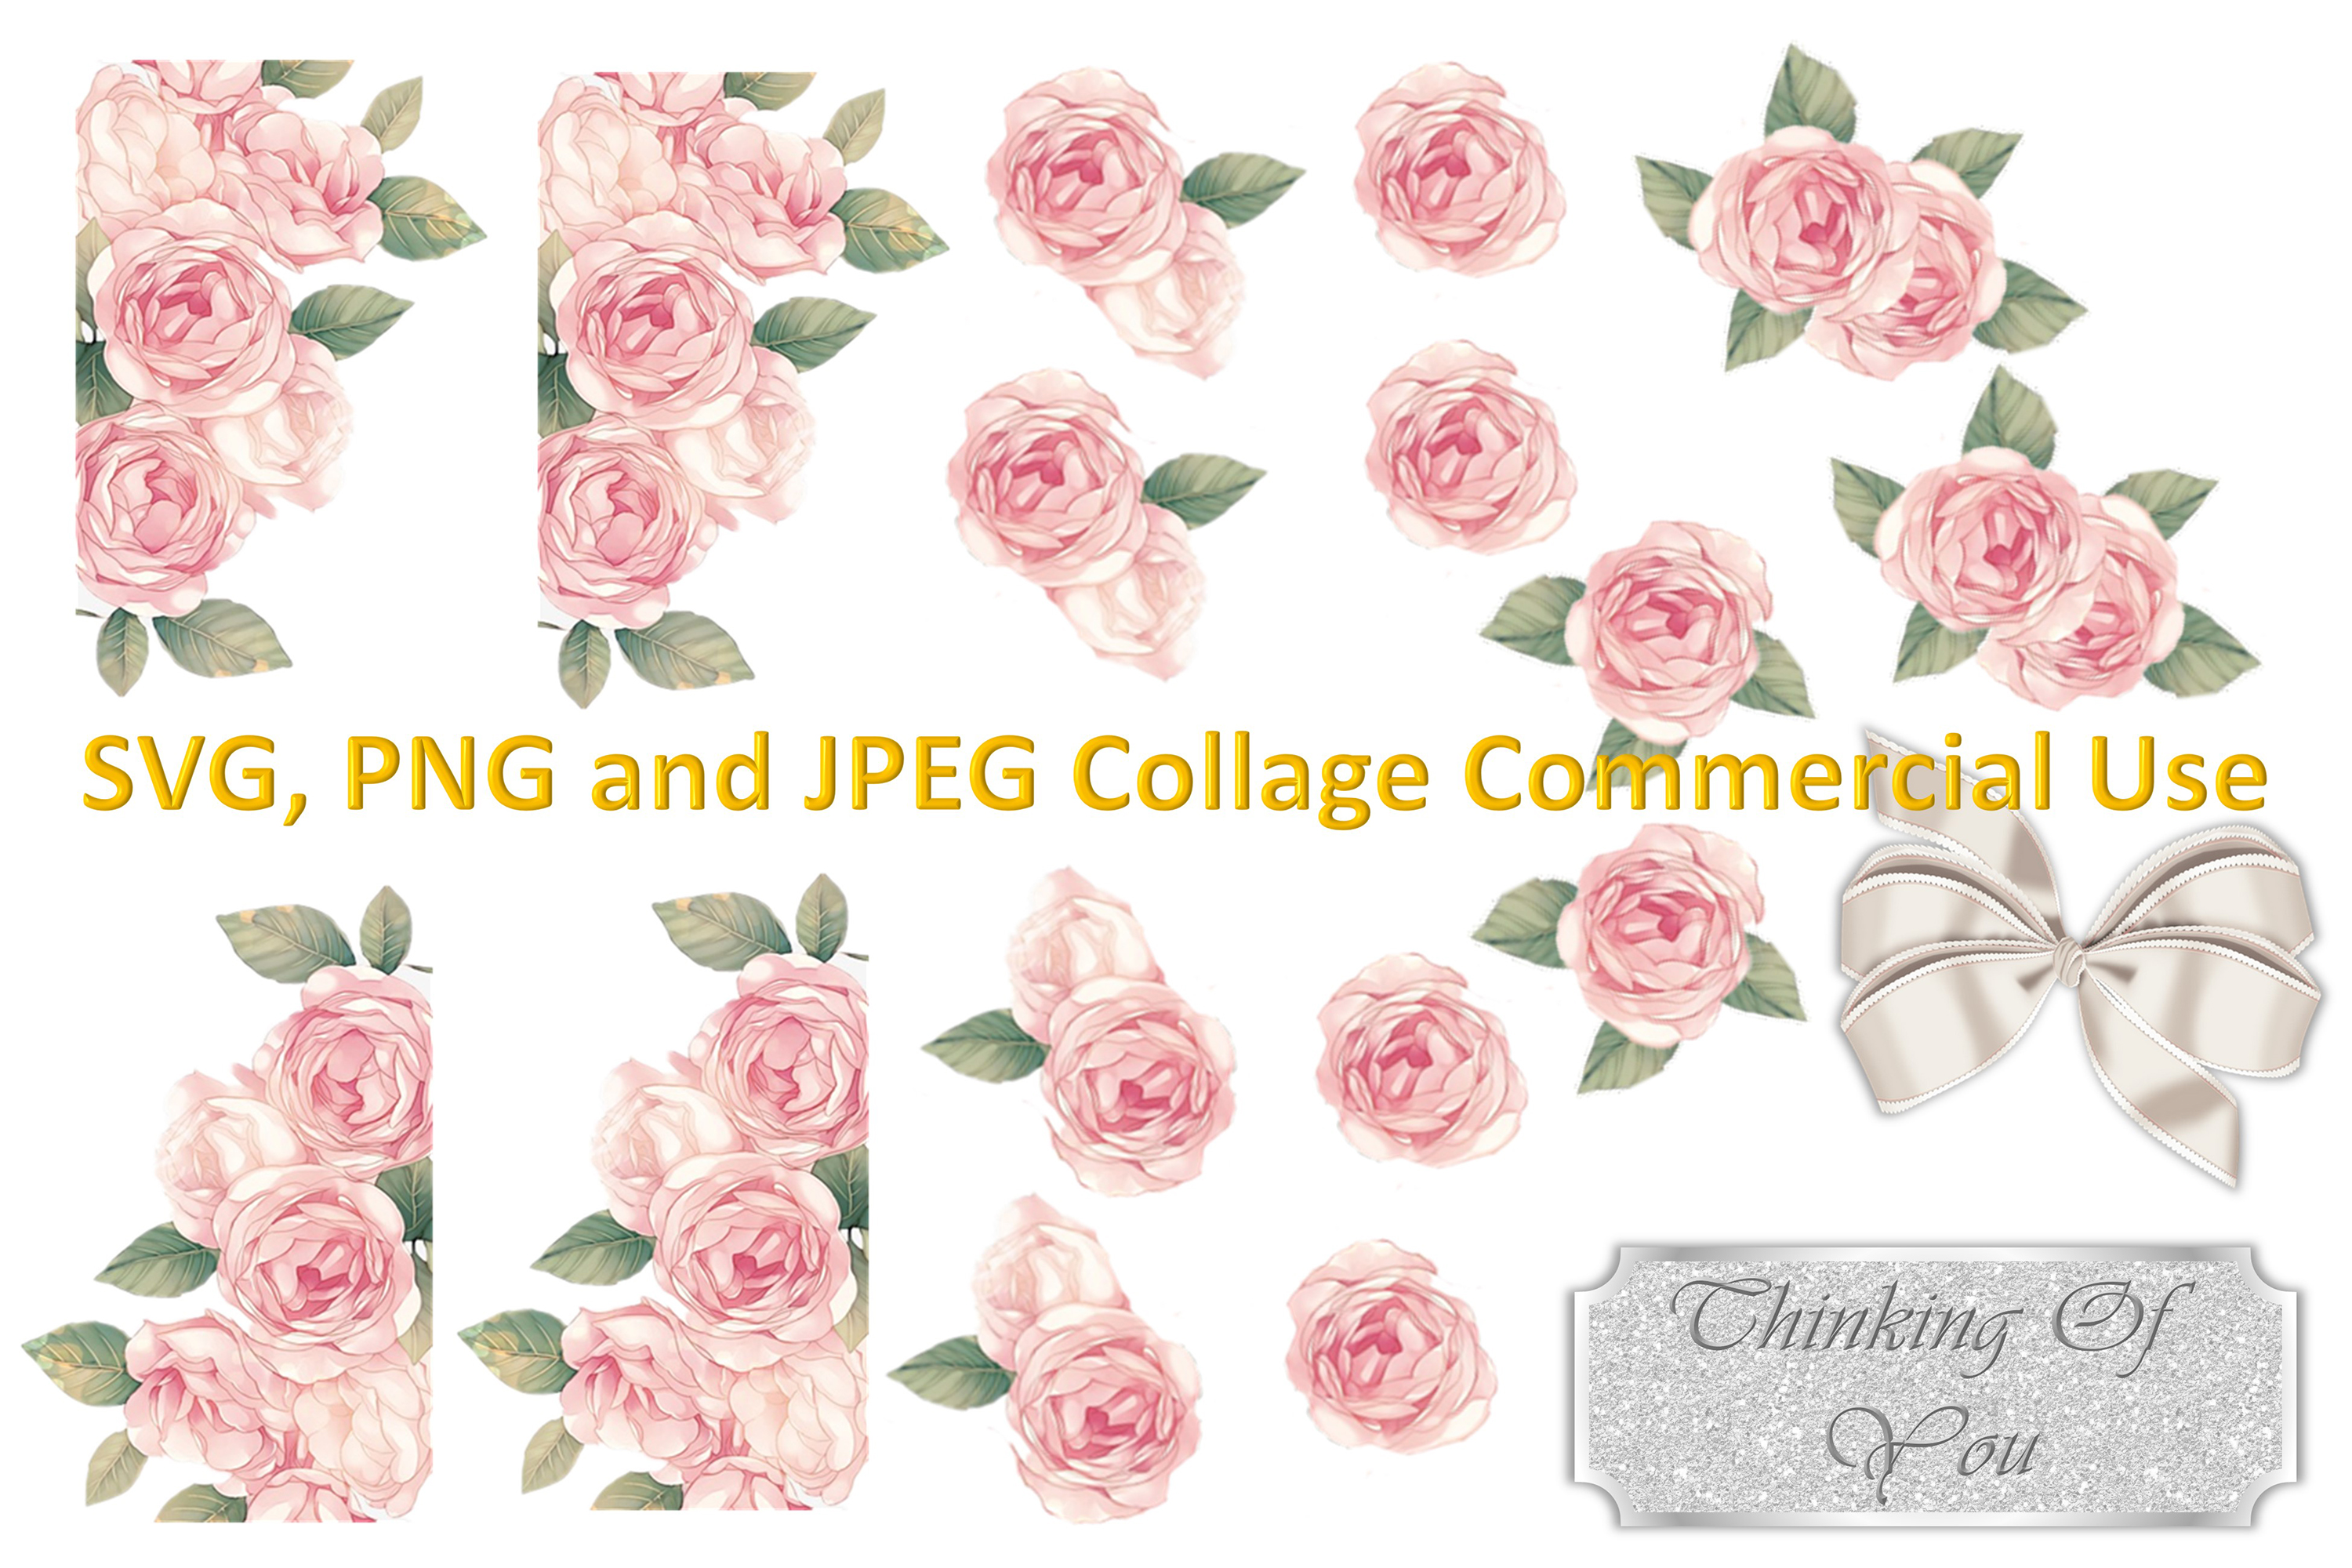 SVG, PNG and JPEG Roses Collage Commercial Use example image 1